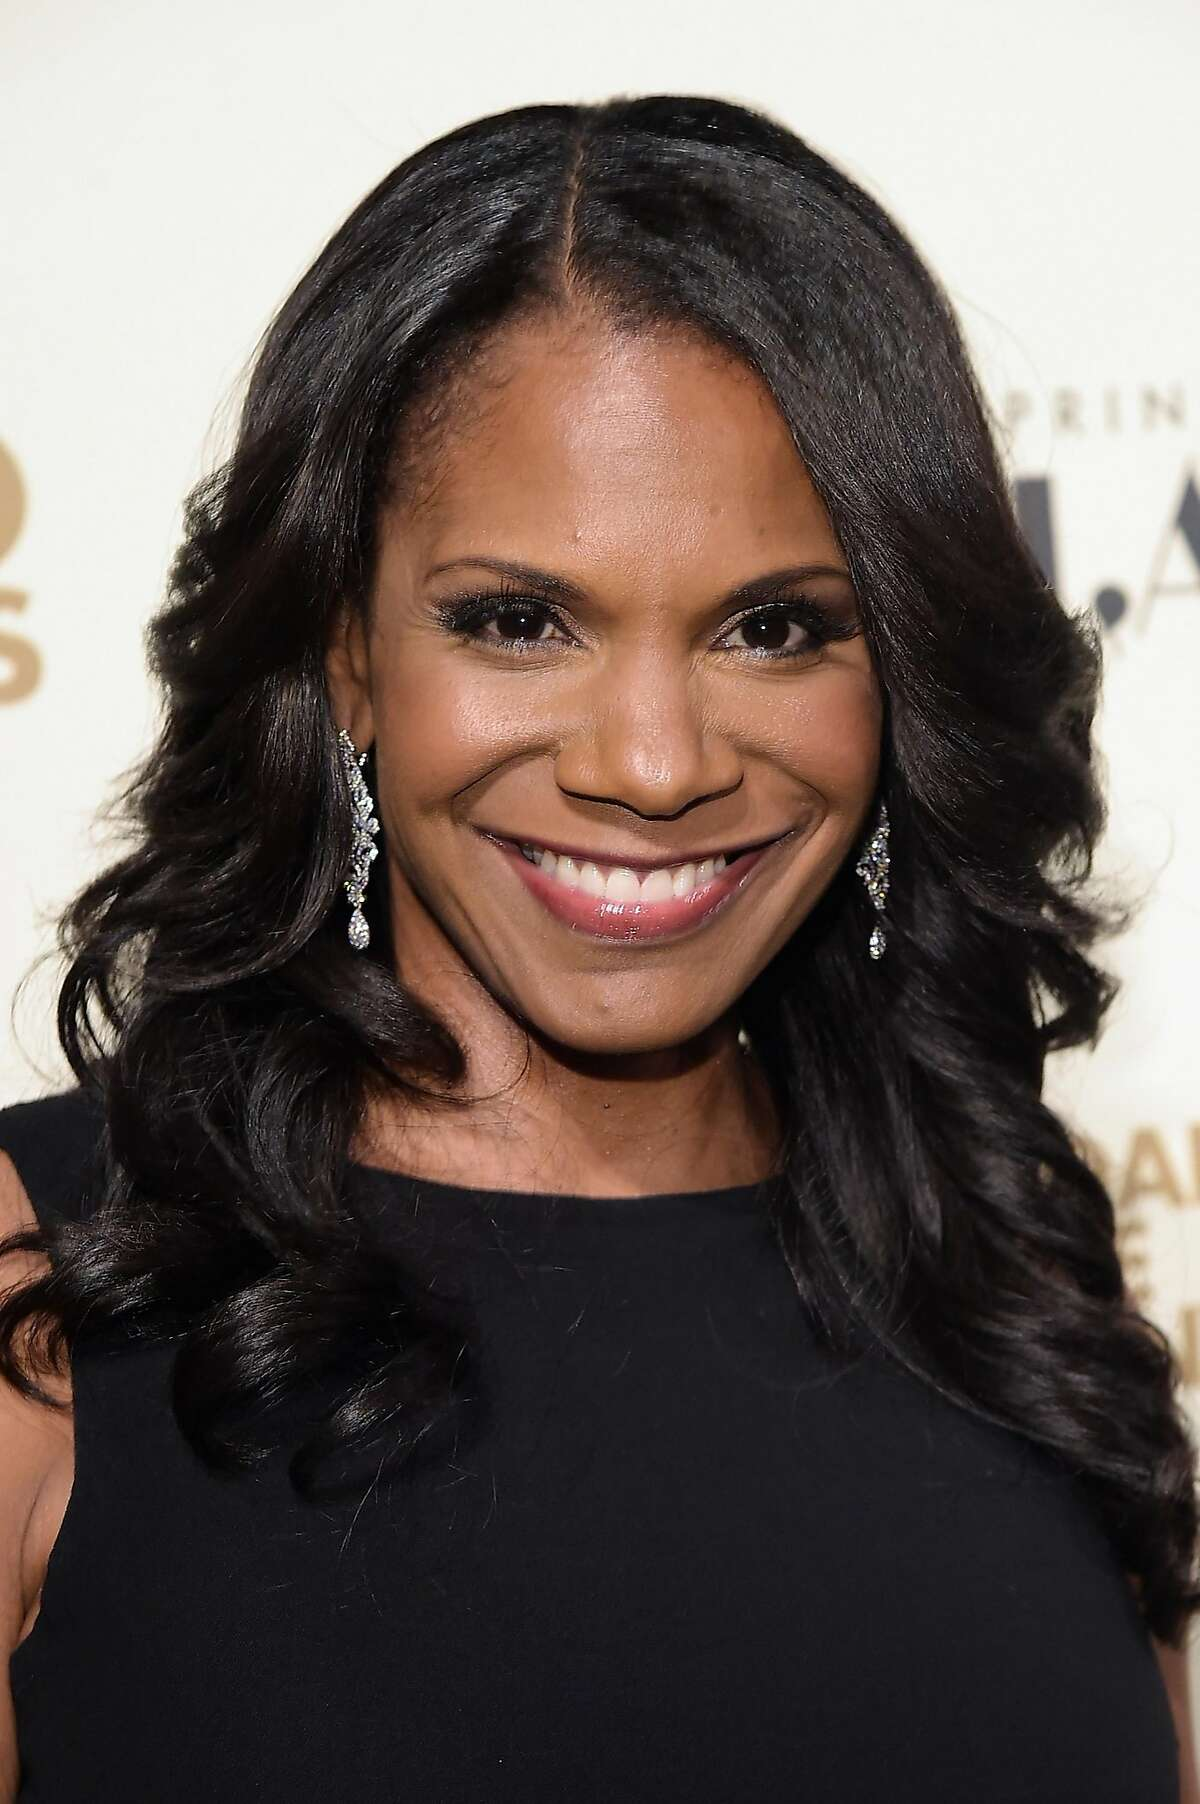 NEW YORK, NY - FEBRUARY 29: Actress Audra McDonald attends the Roundabout Theatre Company 2016 Spring Gala at The Waldorf-Astoria on February 29, 2016 in New York City. (Photo by Theo Wargo/Getty Images)